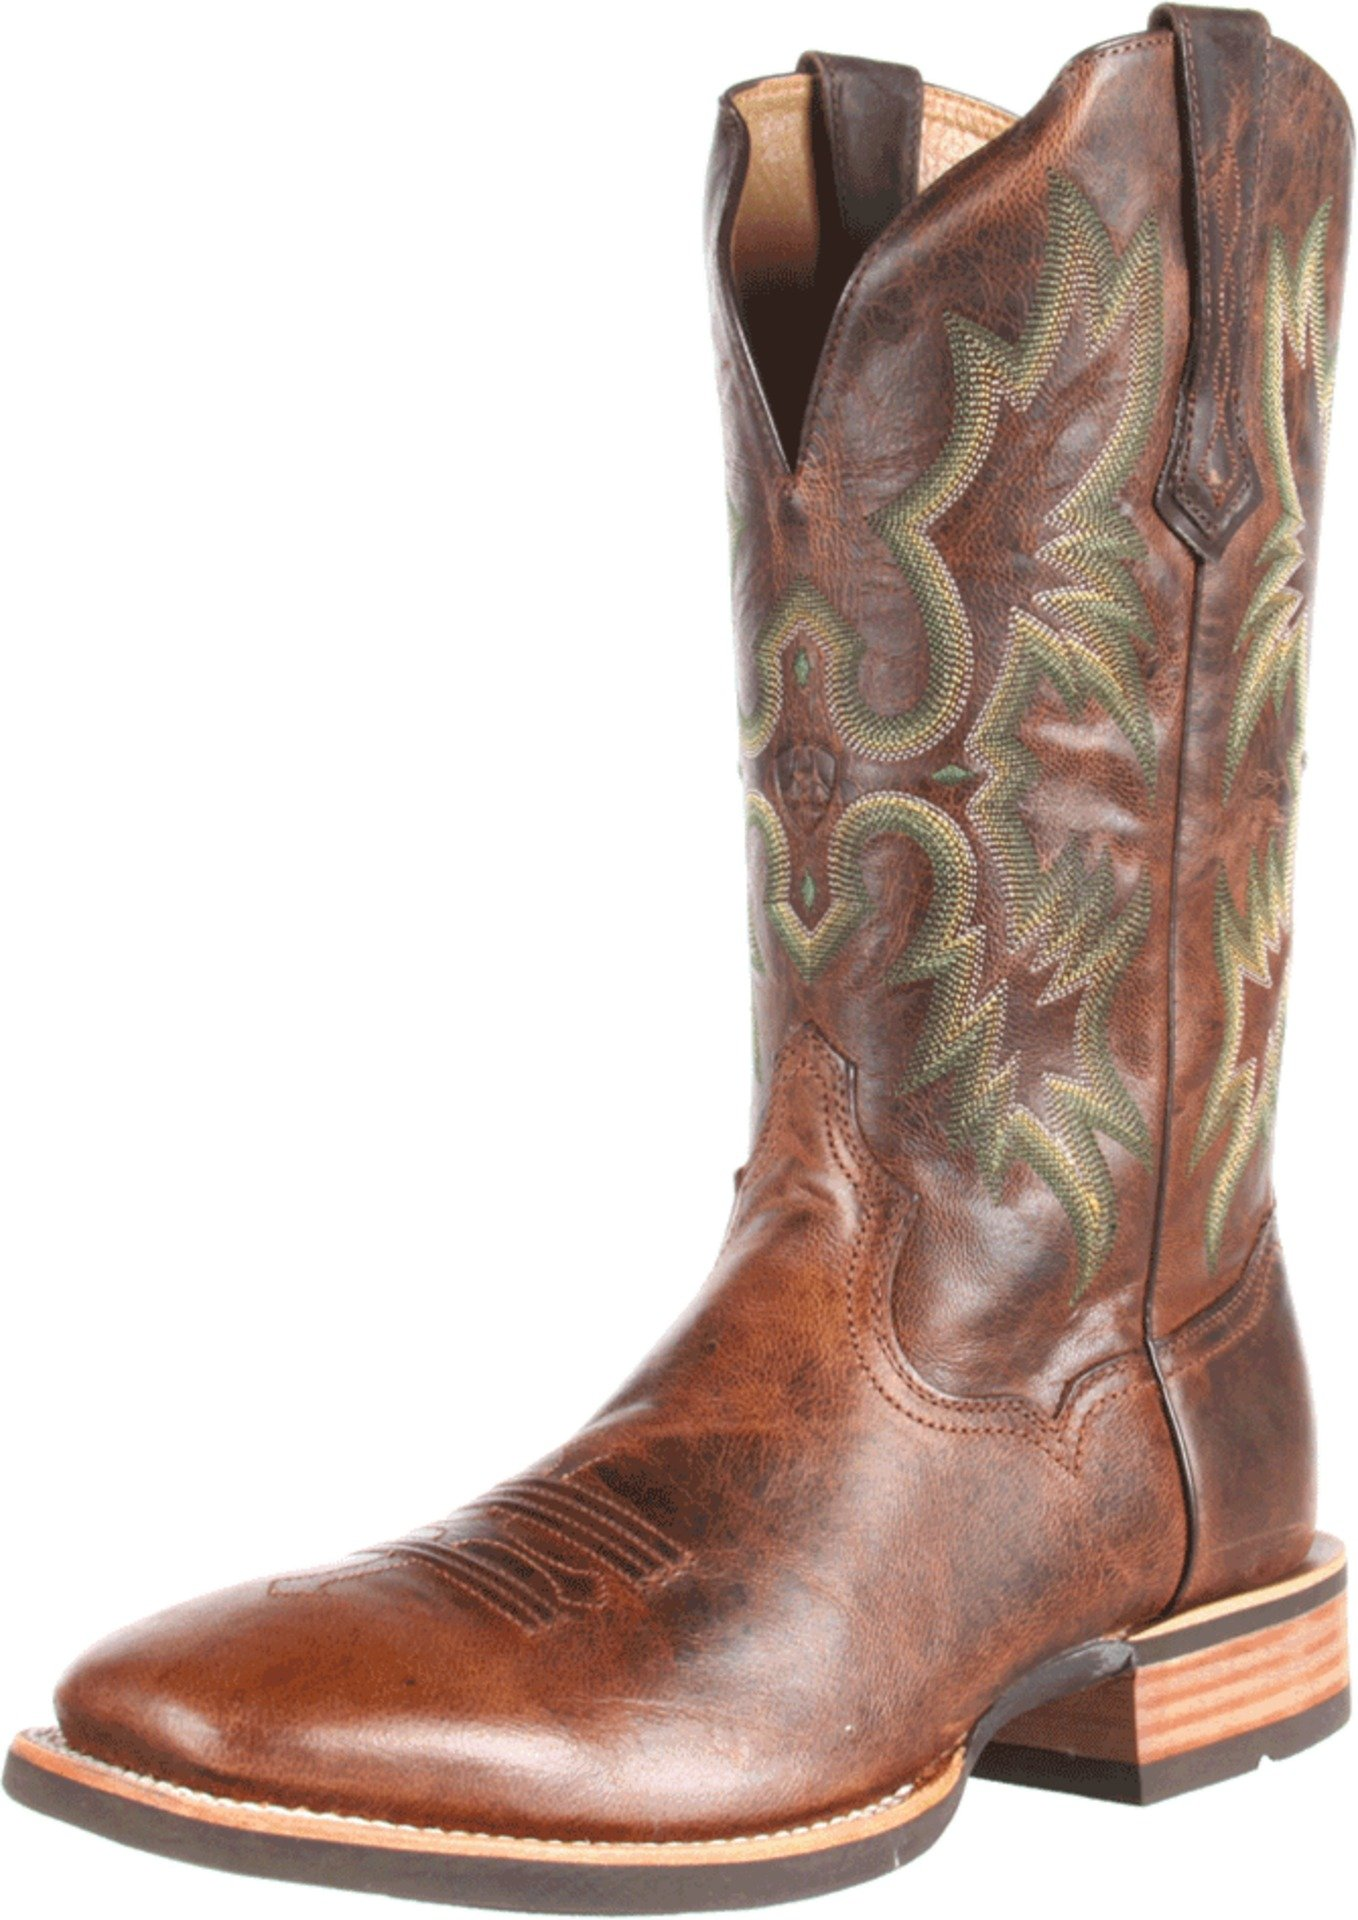 Ariat Men's Tombstone Western Cowboy Boot, Weathered Chestnut, 12 2E US